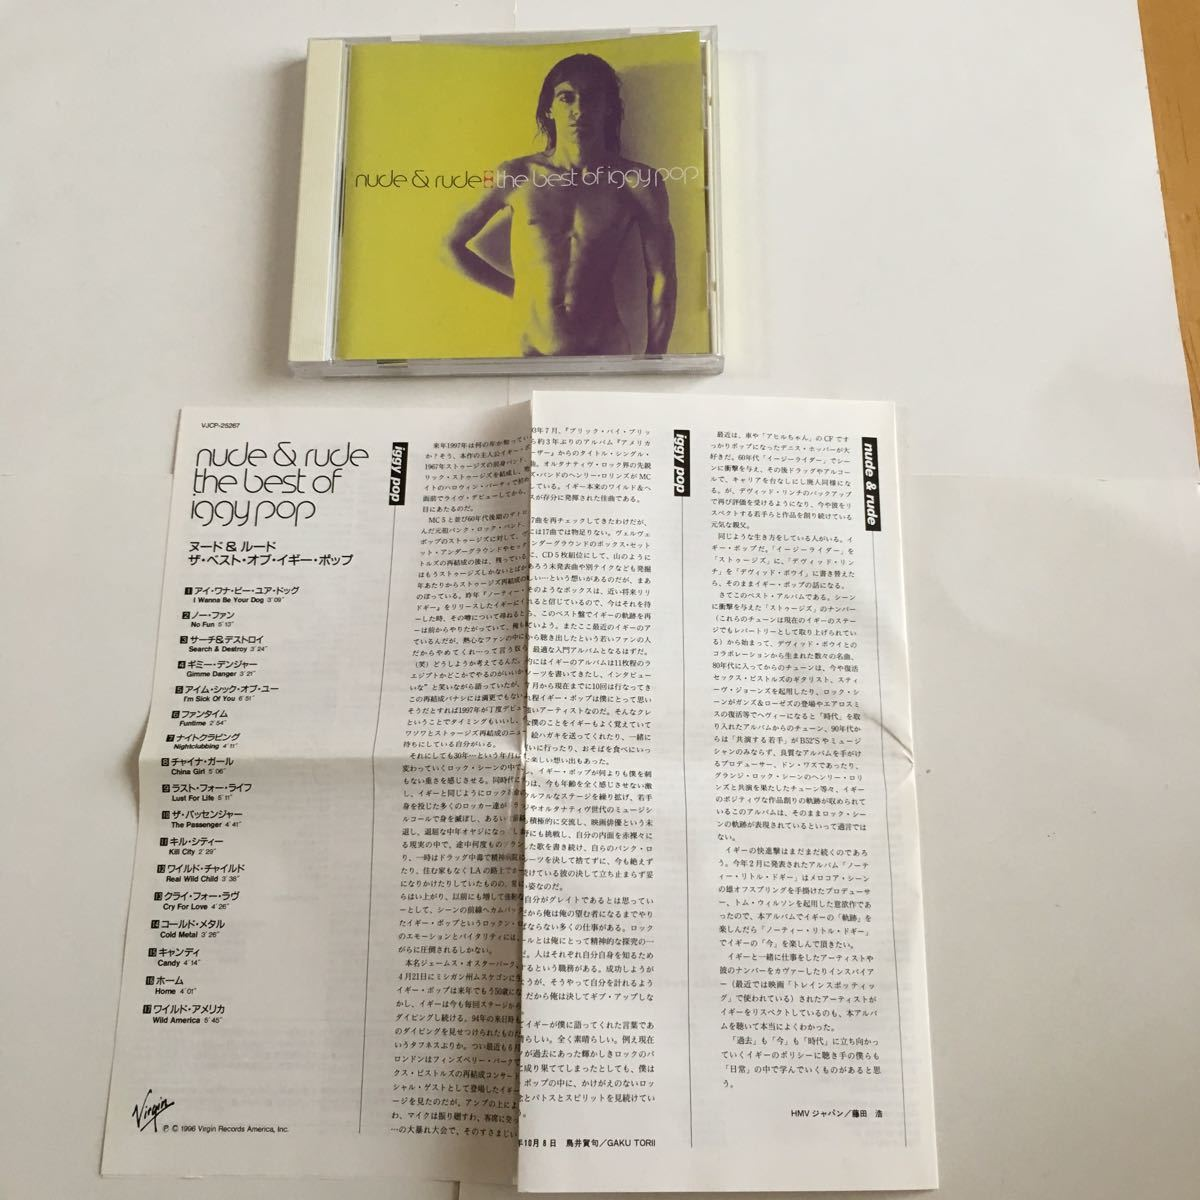 Iggy Pop イギー ポップ Nude & Rude the Best ザ・ストゥージズ The Stooges NO FUN I WANNA BE YOUR DOG CRY FOR LOVE DAVID BOWIE PUNK